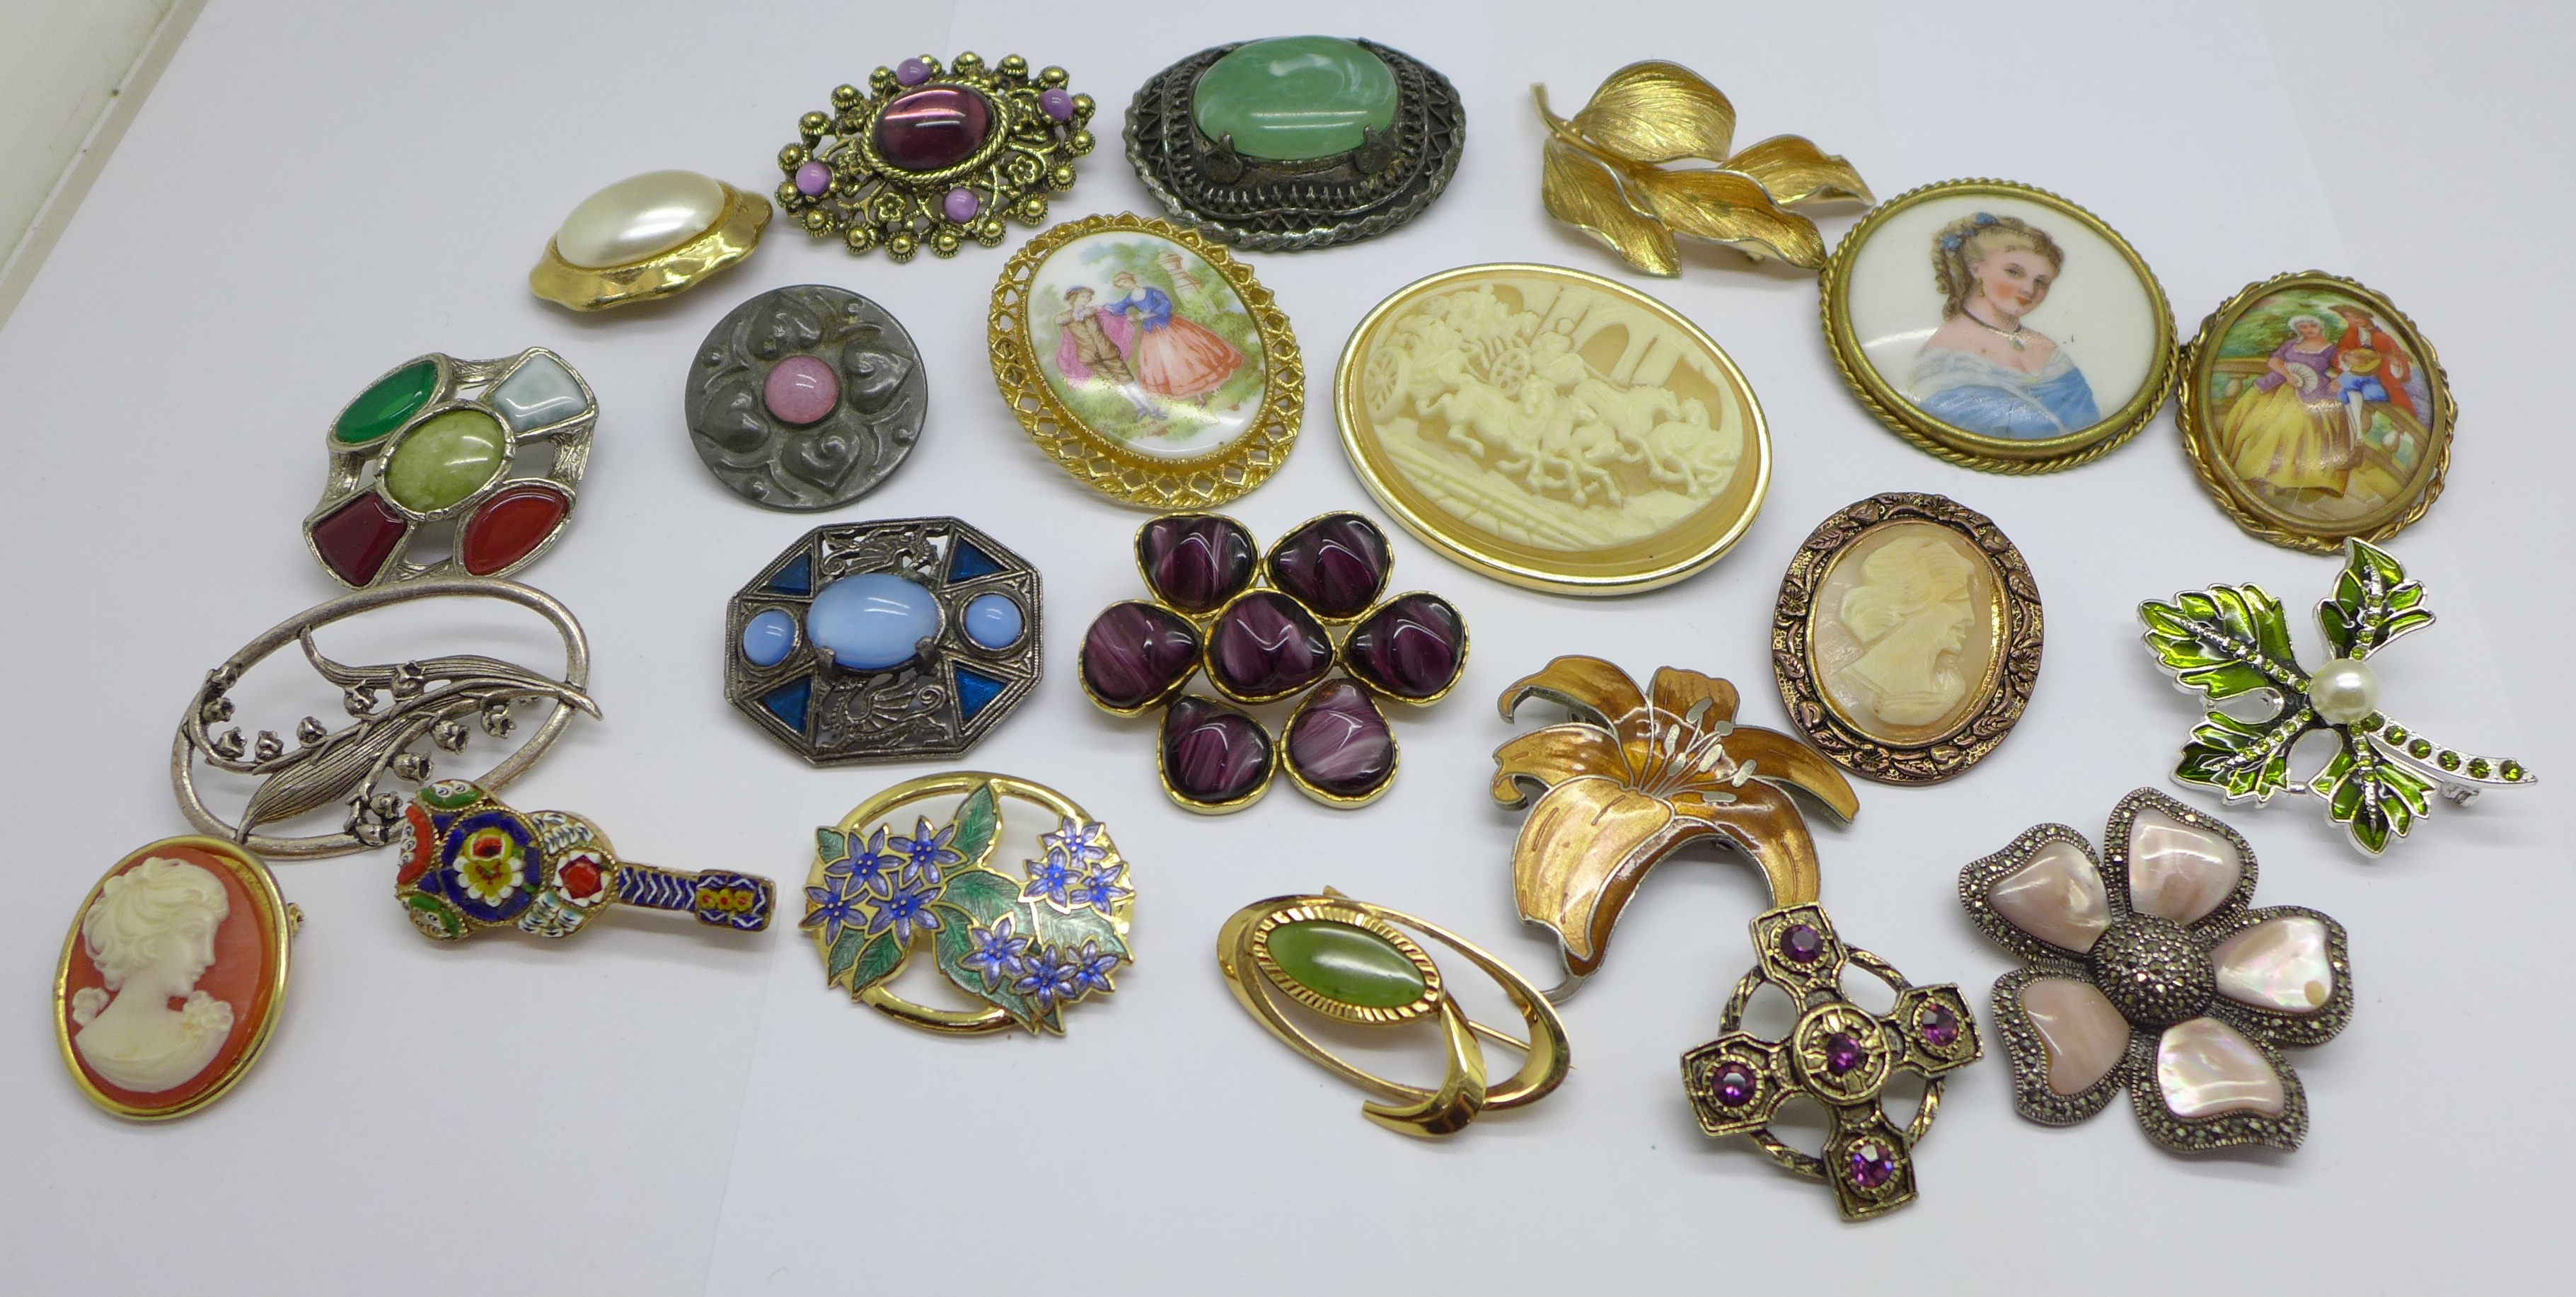 A collection of costume brooches